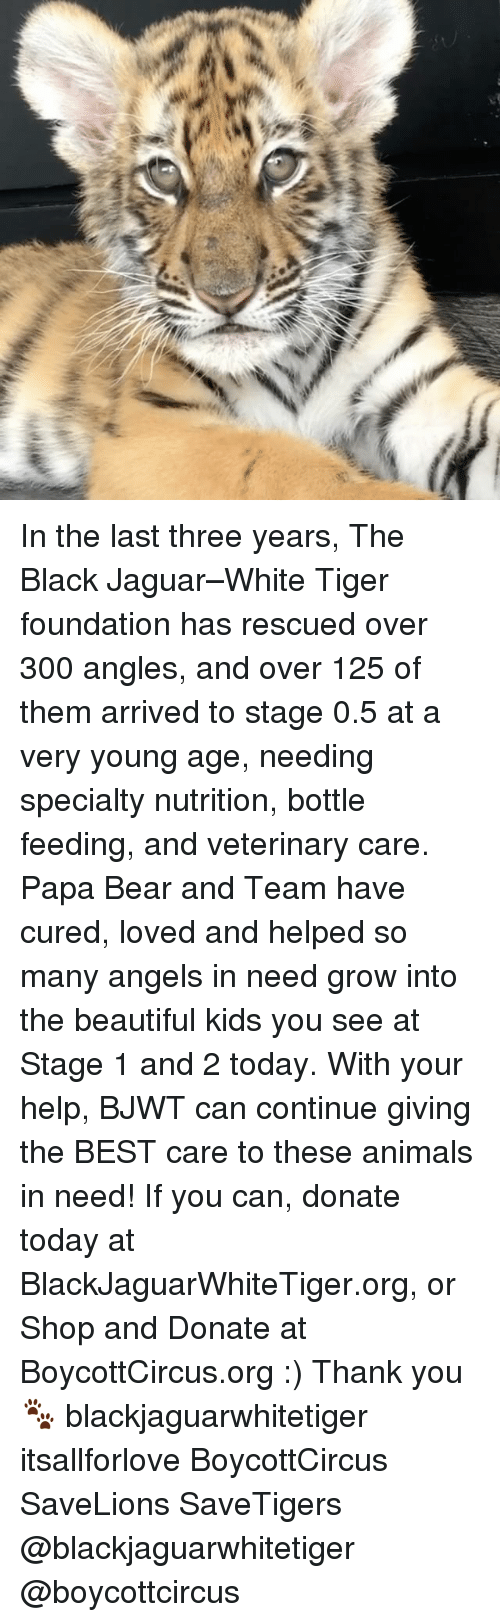 Whitnesses: In the last three years, The Black Jaguar–White Tiger foundation has rescued over 300 angles, and over 125 of them arrived to stage 0.5 at a very young age, needing specialty nutrition, bottle feeding, and veterinary care. Papa Bear and Team have cured, loved and helped so many angels in need grow into the beautiful kids you see at Stage 1 and 2 today. With your help, BJWT can continue giving the BEST care to these animals in need! If you can, donate today at BlackJaguarWhiteTiger.org, or Shop and Donate at BoycottCircus.org :) Thank you🐾 blackjaguarwhitetiger itsallforlove BoycottCircus SaveLions SaveTigers @blackjaguarwhitetiger @boycottcircus